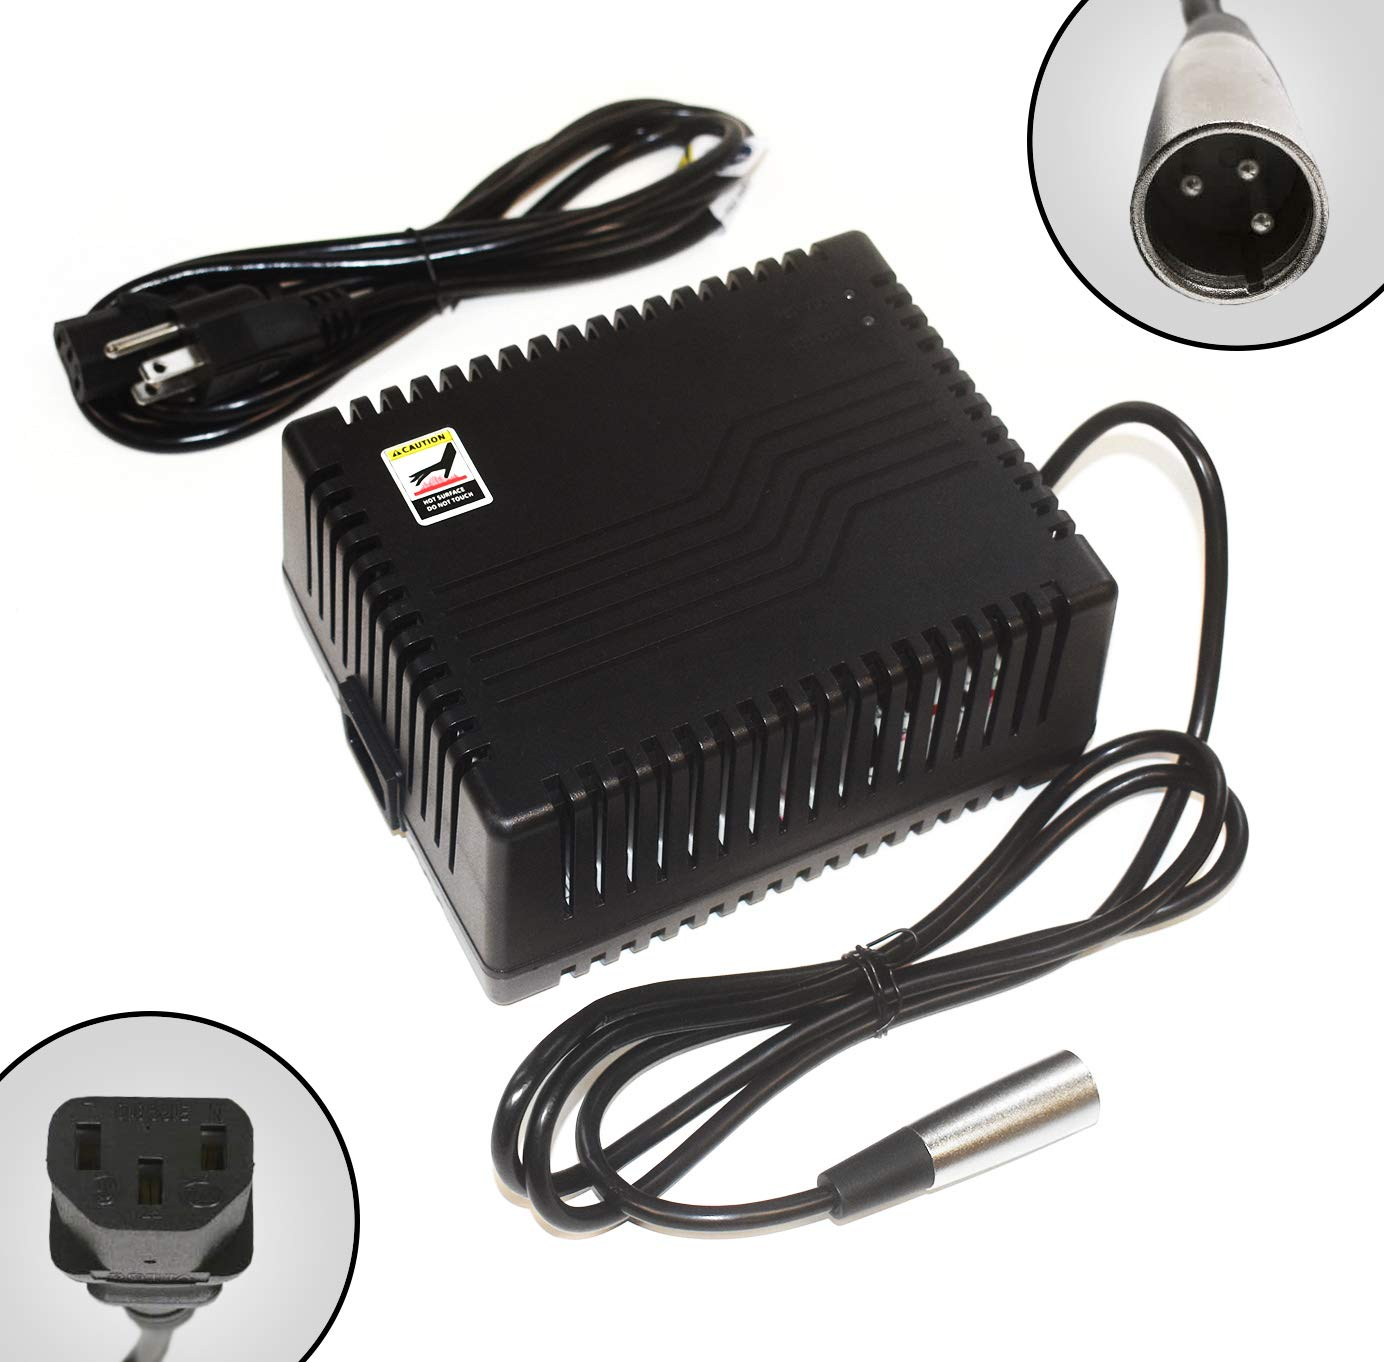 ACI Super Power Battery Charger (5.0A) with XLR Connector for Electric Scooters and Wheelchairs - Fit for Pride Mobility, Jazzy Power Chair, Drive Medical, Golden Technologies, Schwinn, Shoprider by ACI Super Power